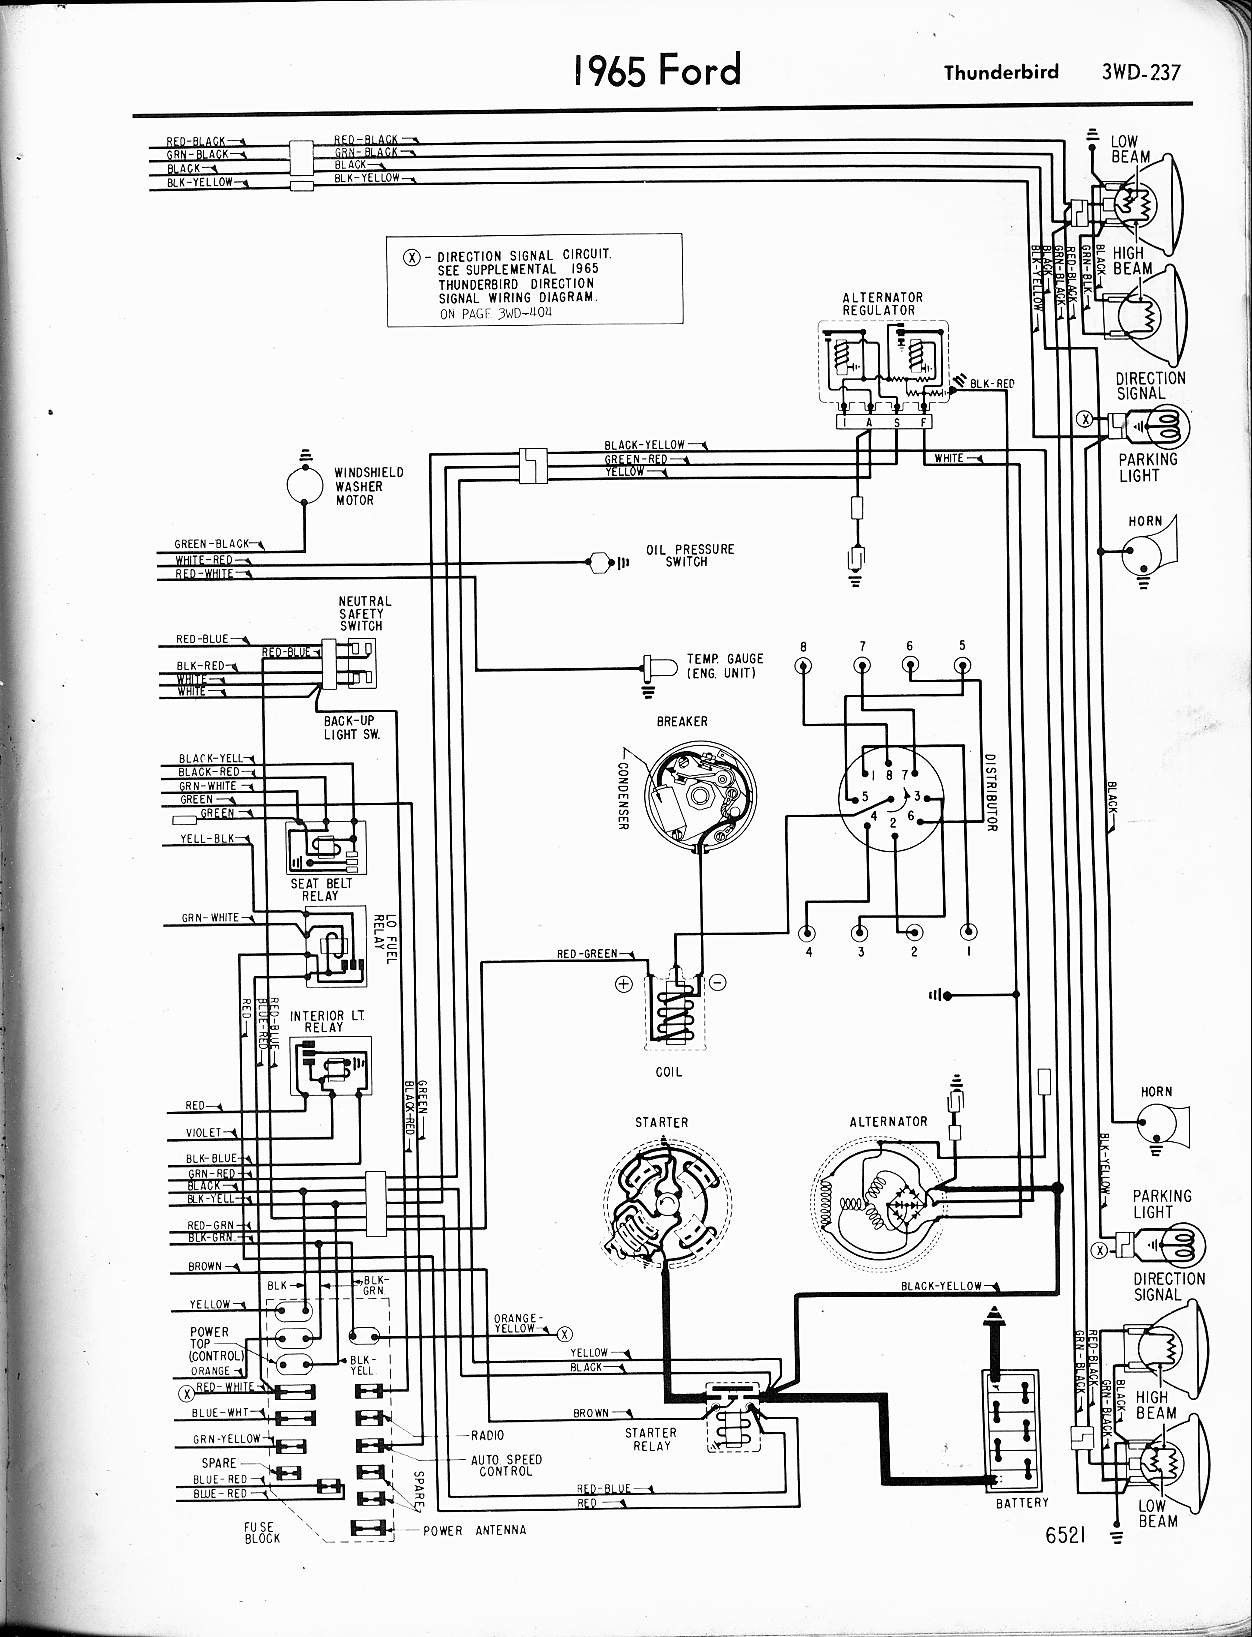 ford alternator wiring diagram external regulator awesome wiring rh mainetreasurechest com 1965 ford truck wiring diagram 1965 ford f100 alternator wiring diagram